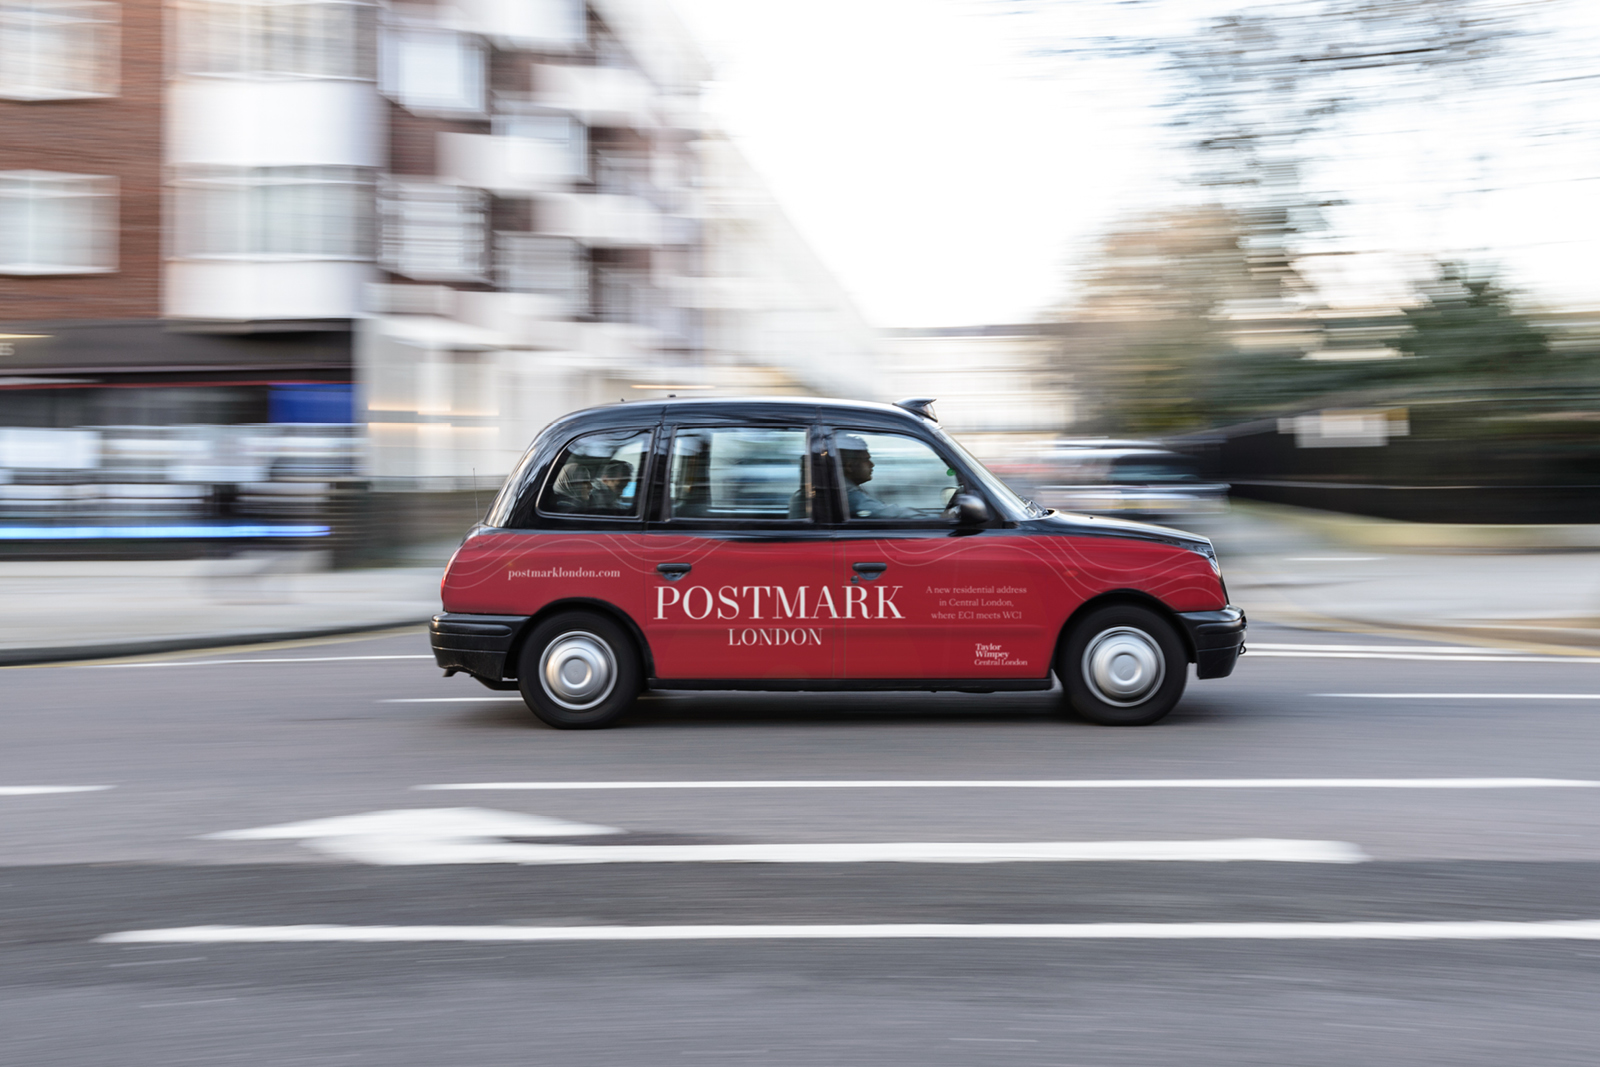 Signage marketing for Postmark London development (taxi wrap)